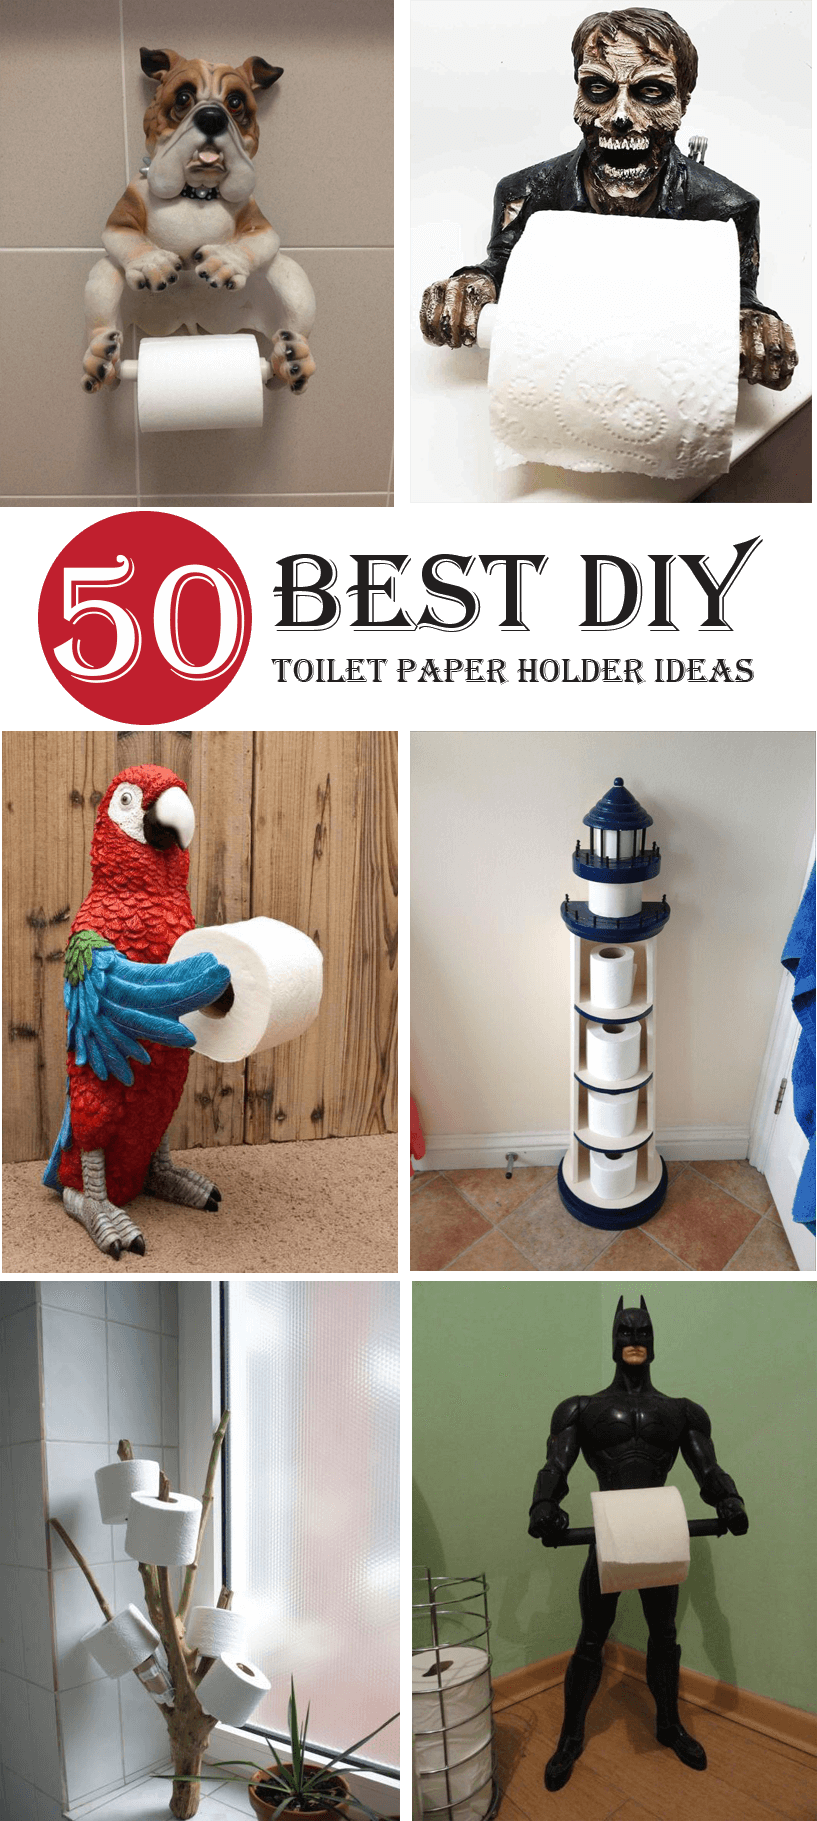 Best diy toilet paper holder ideas